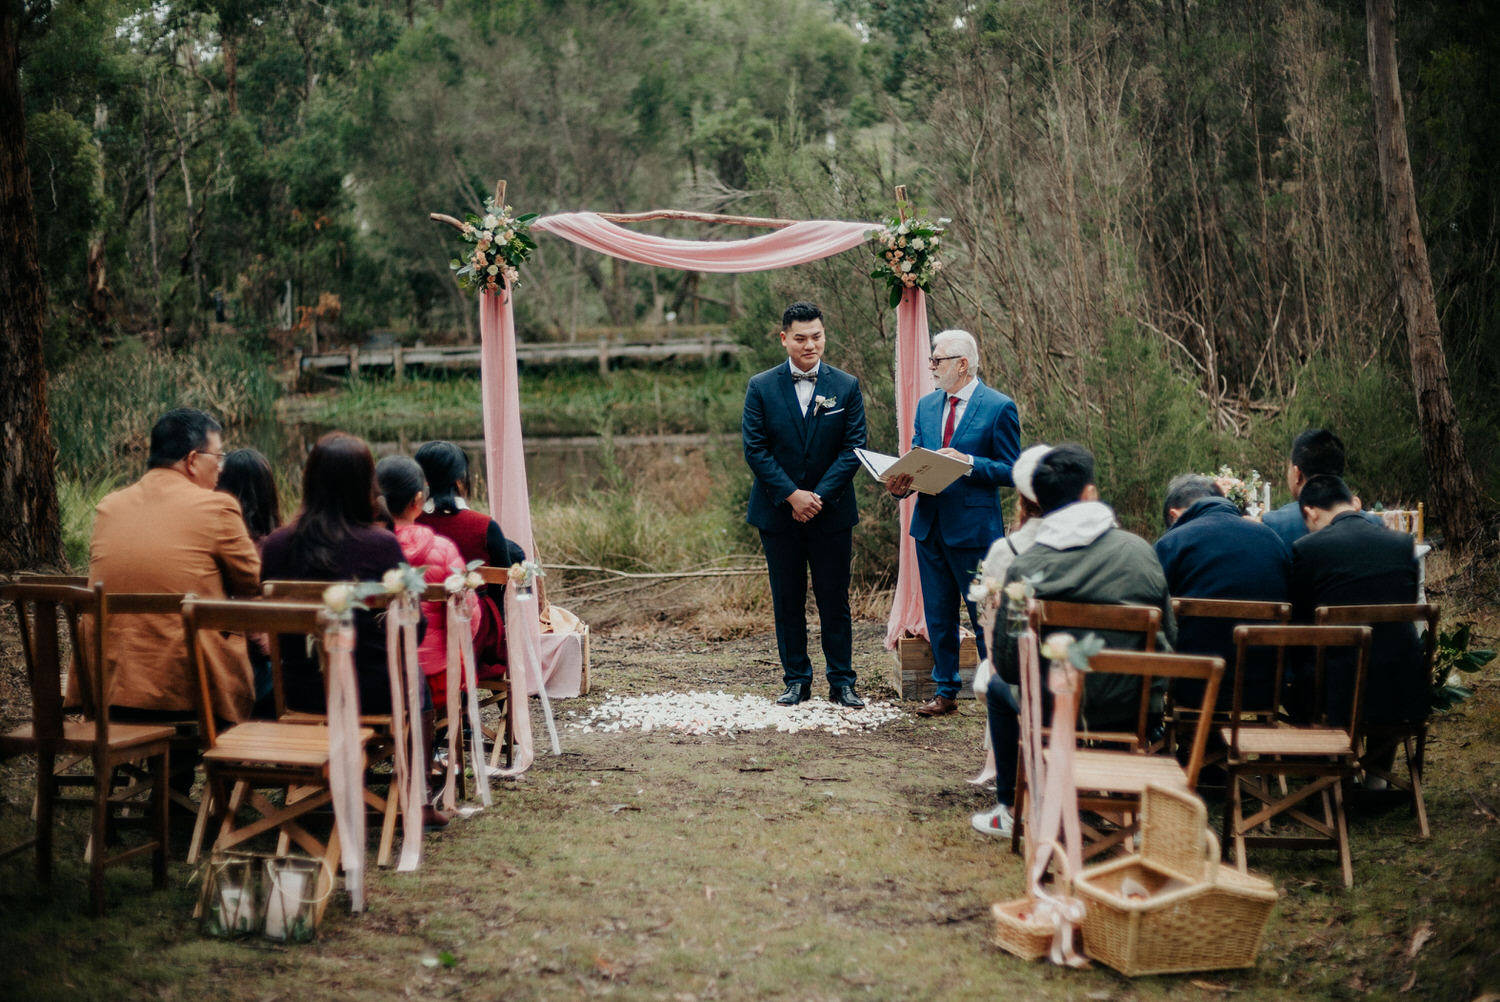 016-melbourne-wedding-bride-and-groom-andrew-hardy-ceremony.jpg